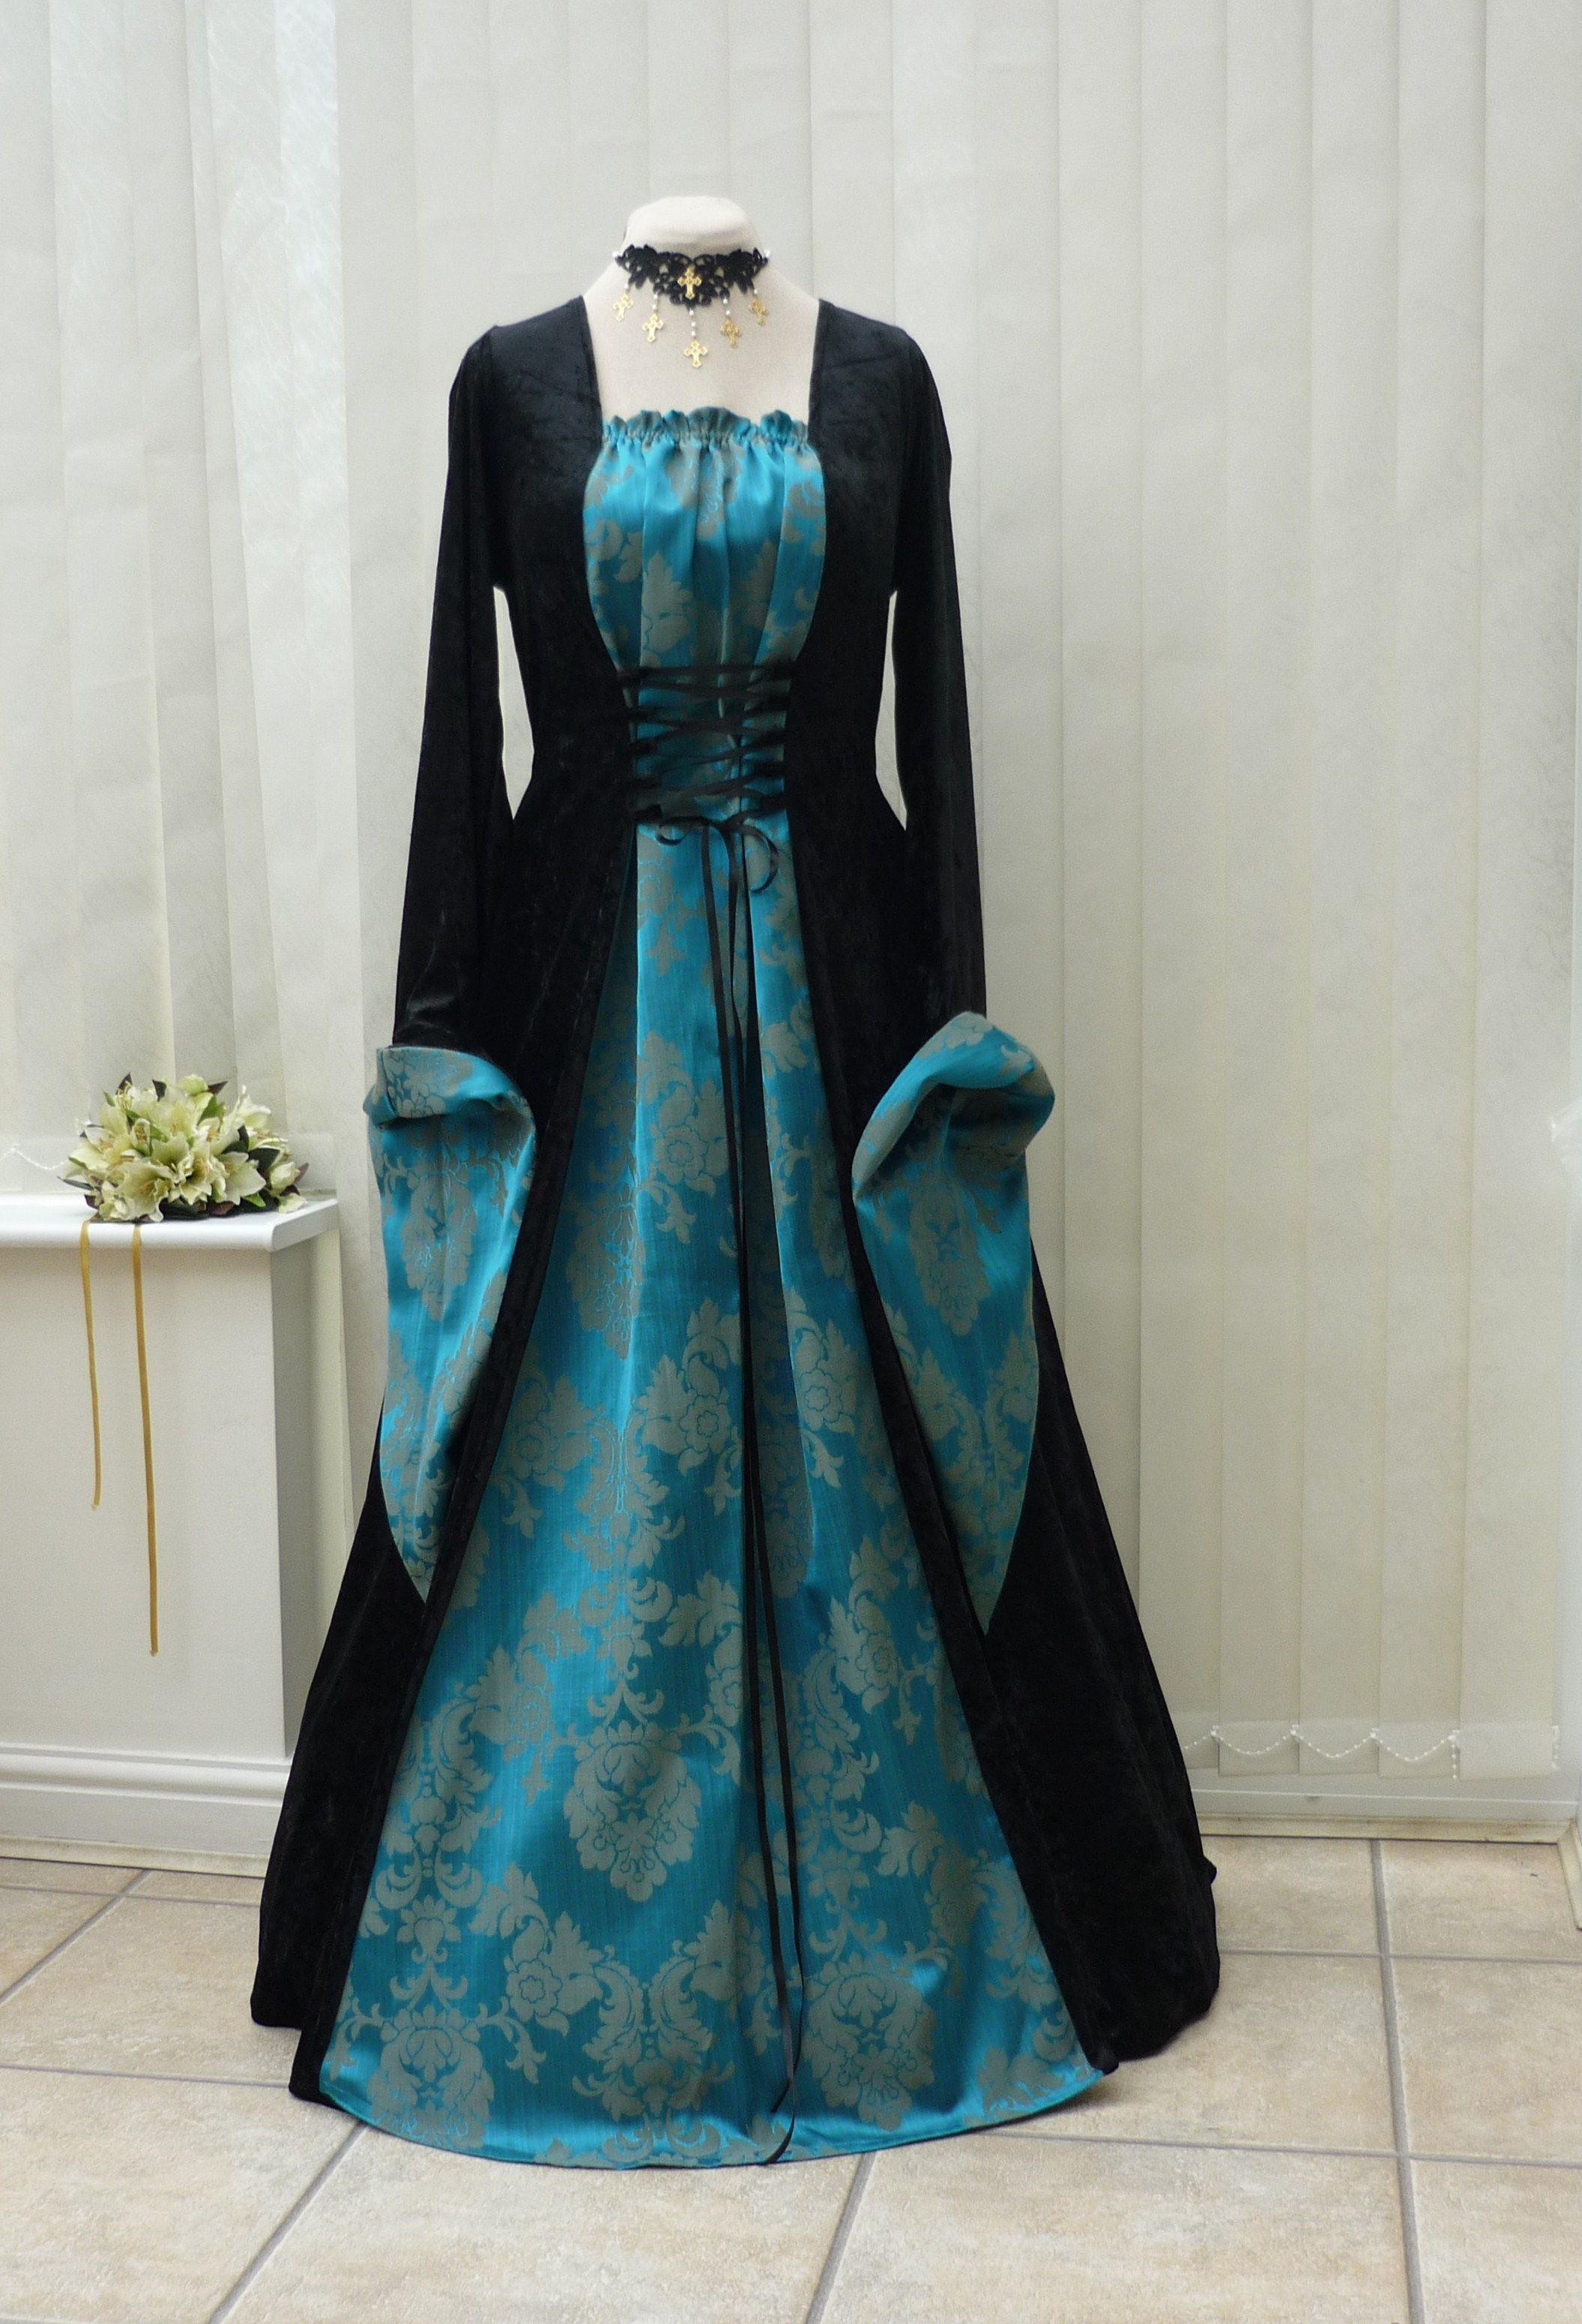 Medieval Gothic Black Teal Blue Dress | MEDIEVAL / ELVEN FASHION ...